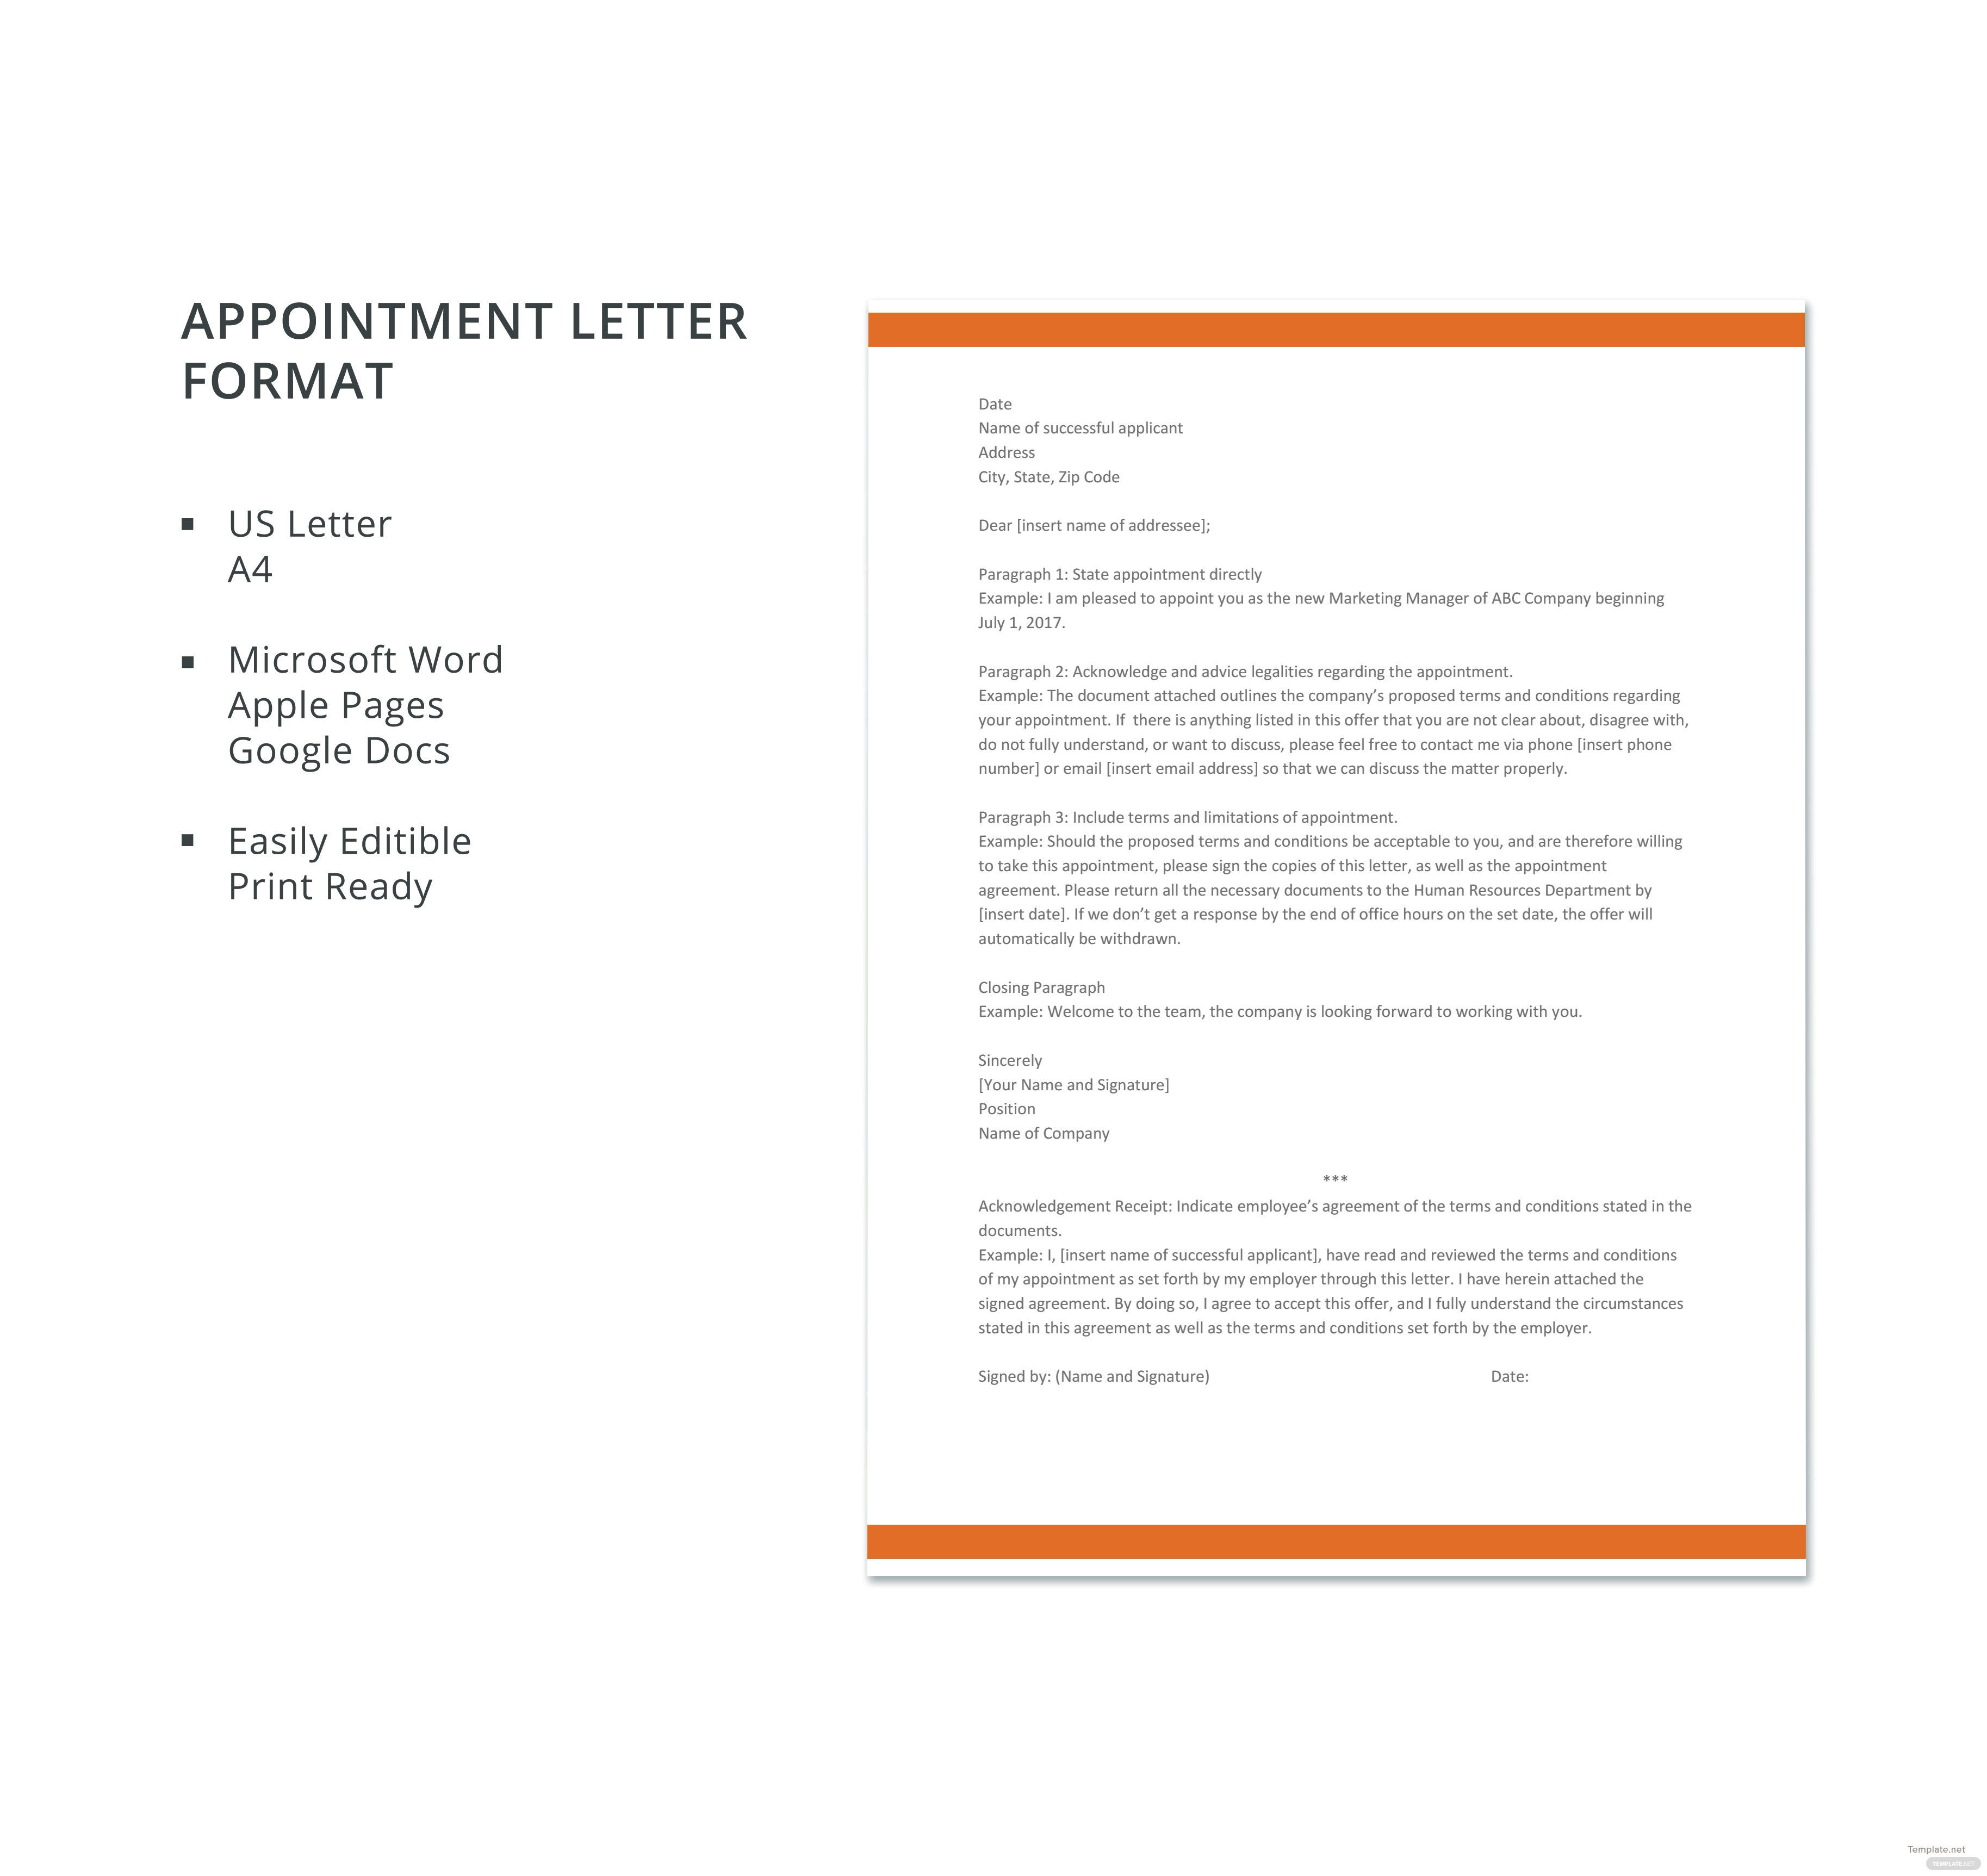 Appointment letter format in microsoft word apple pages google click to see full template appointment letter format thecheapjerseys Choice Image